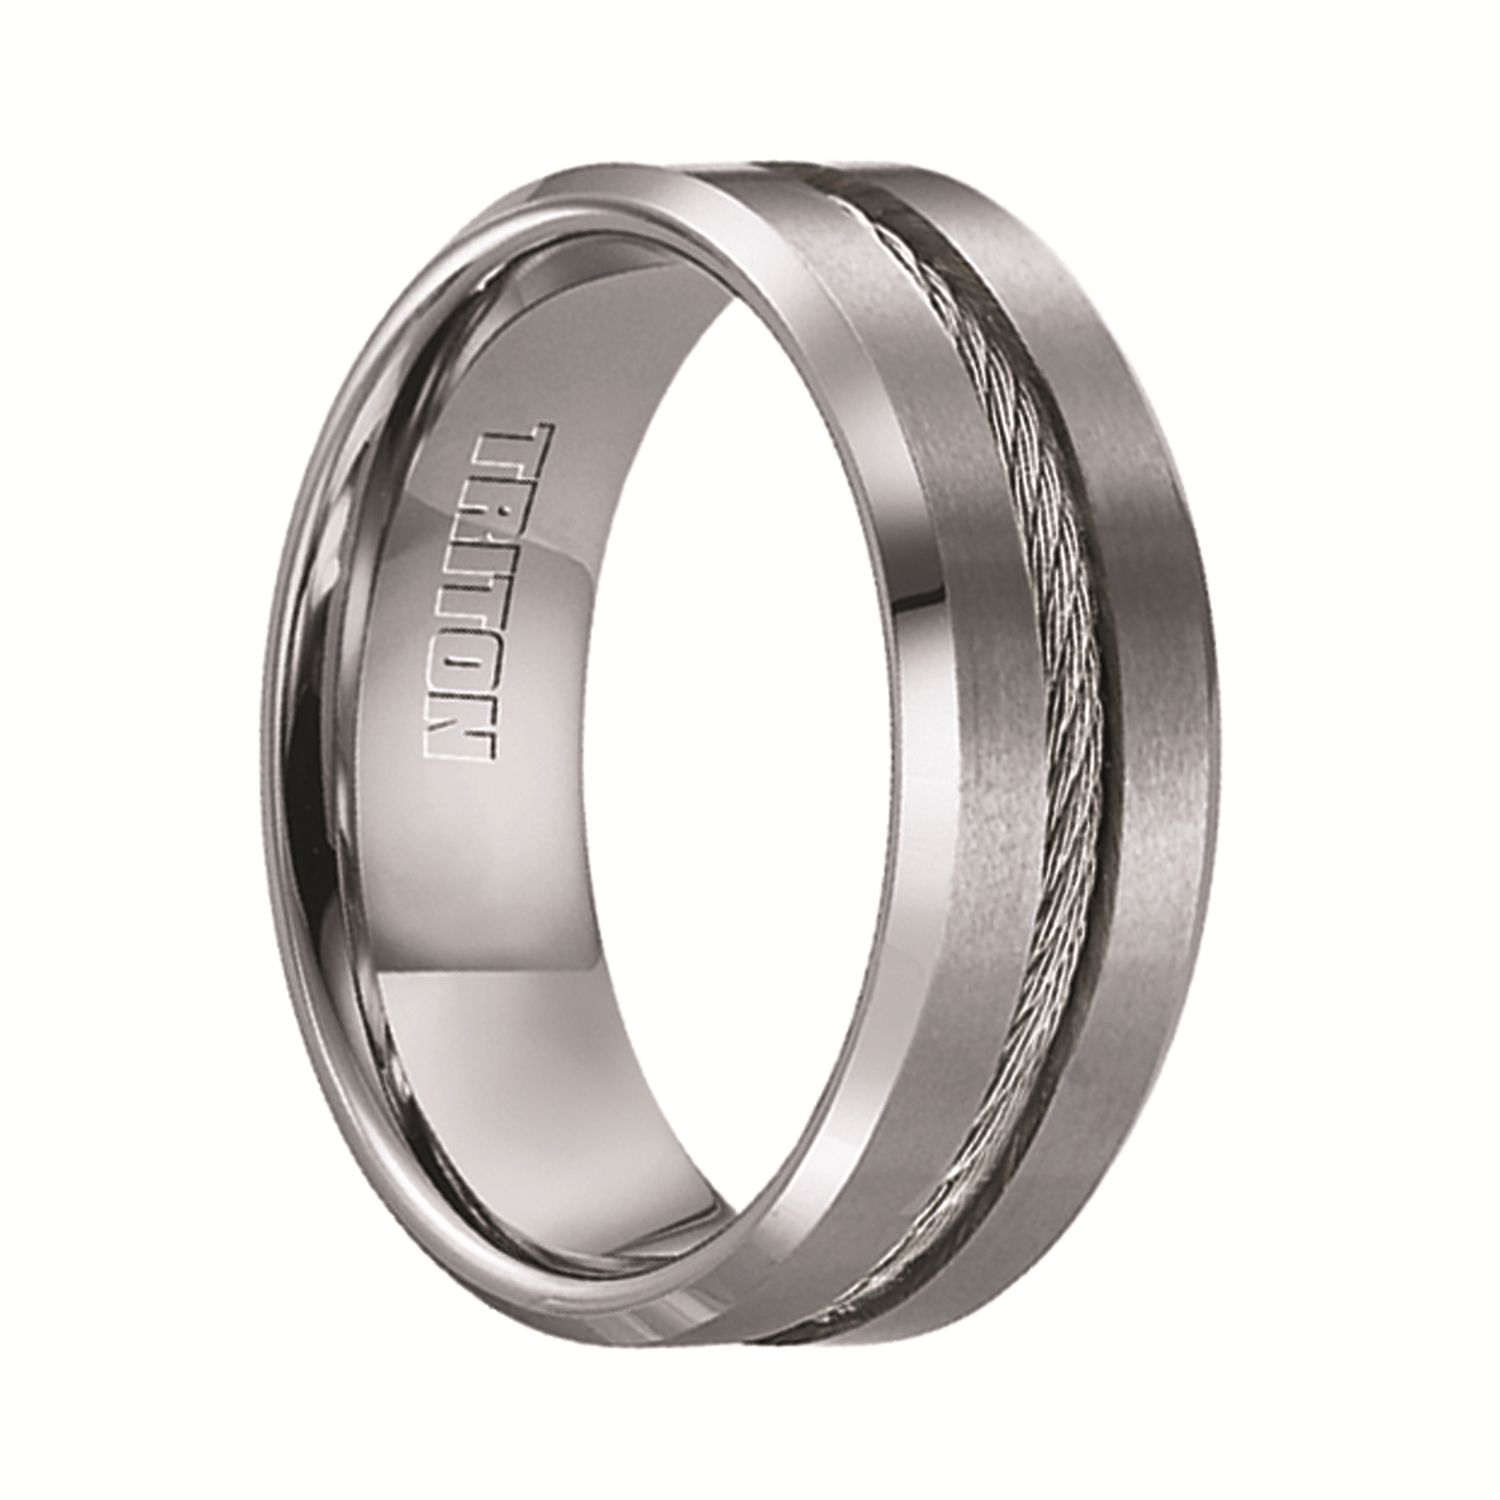 Triton Rings CURTIS Tungsten Wedding Band with Steel Cable Inlay